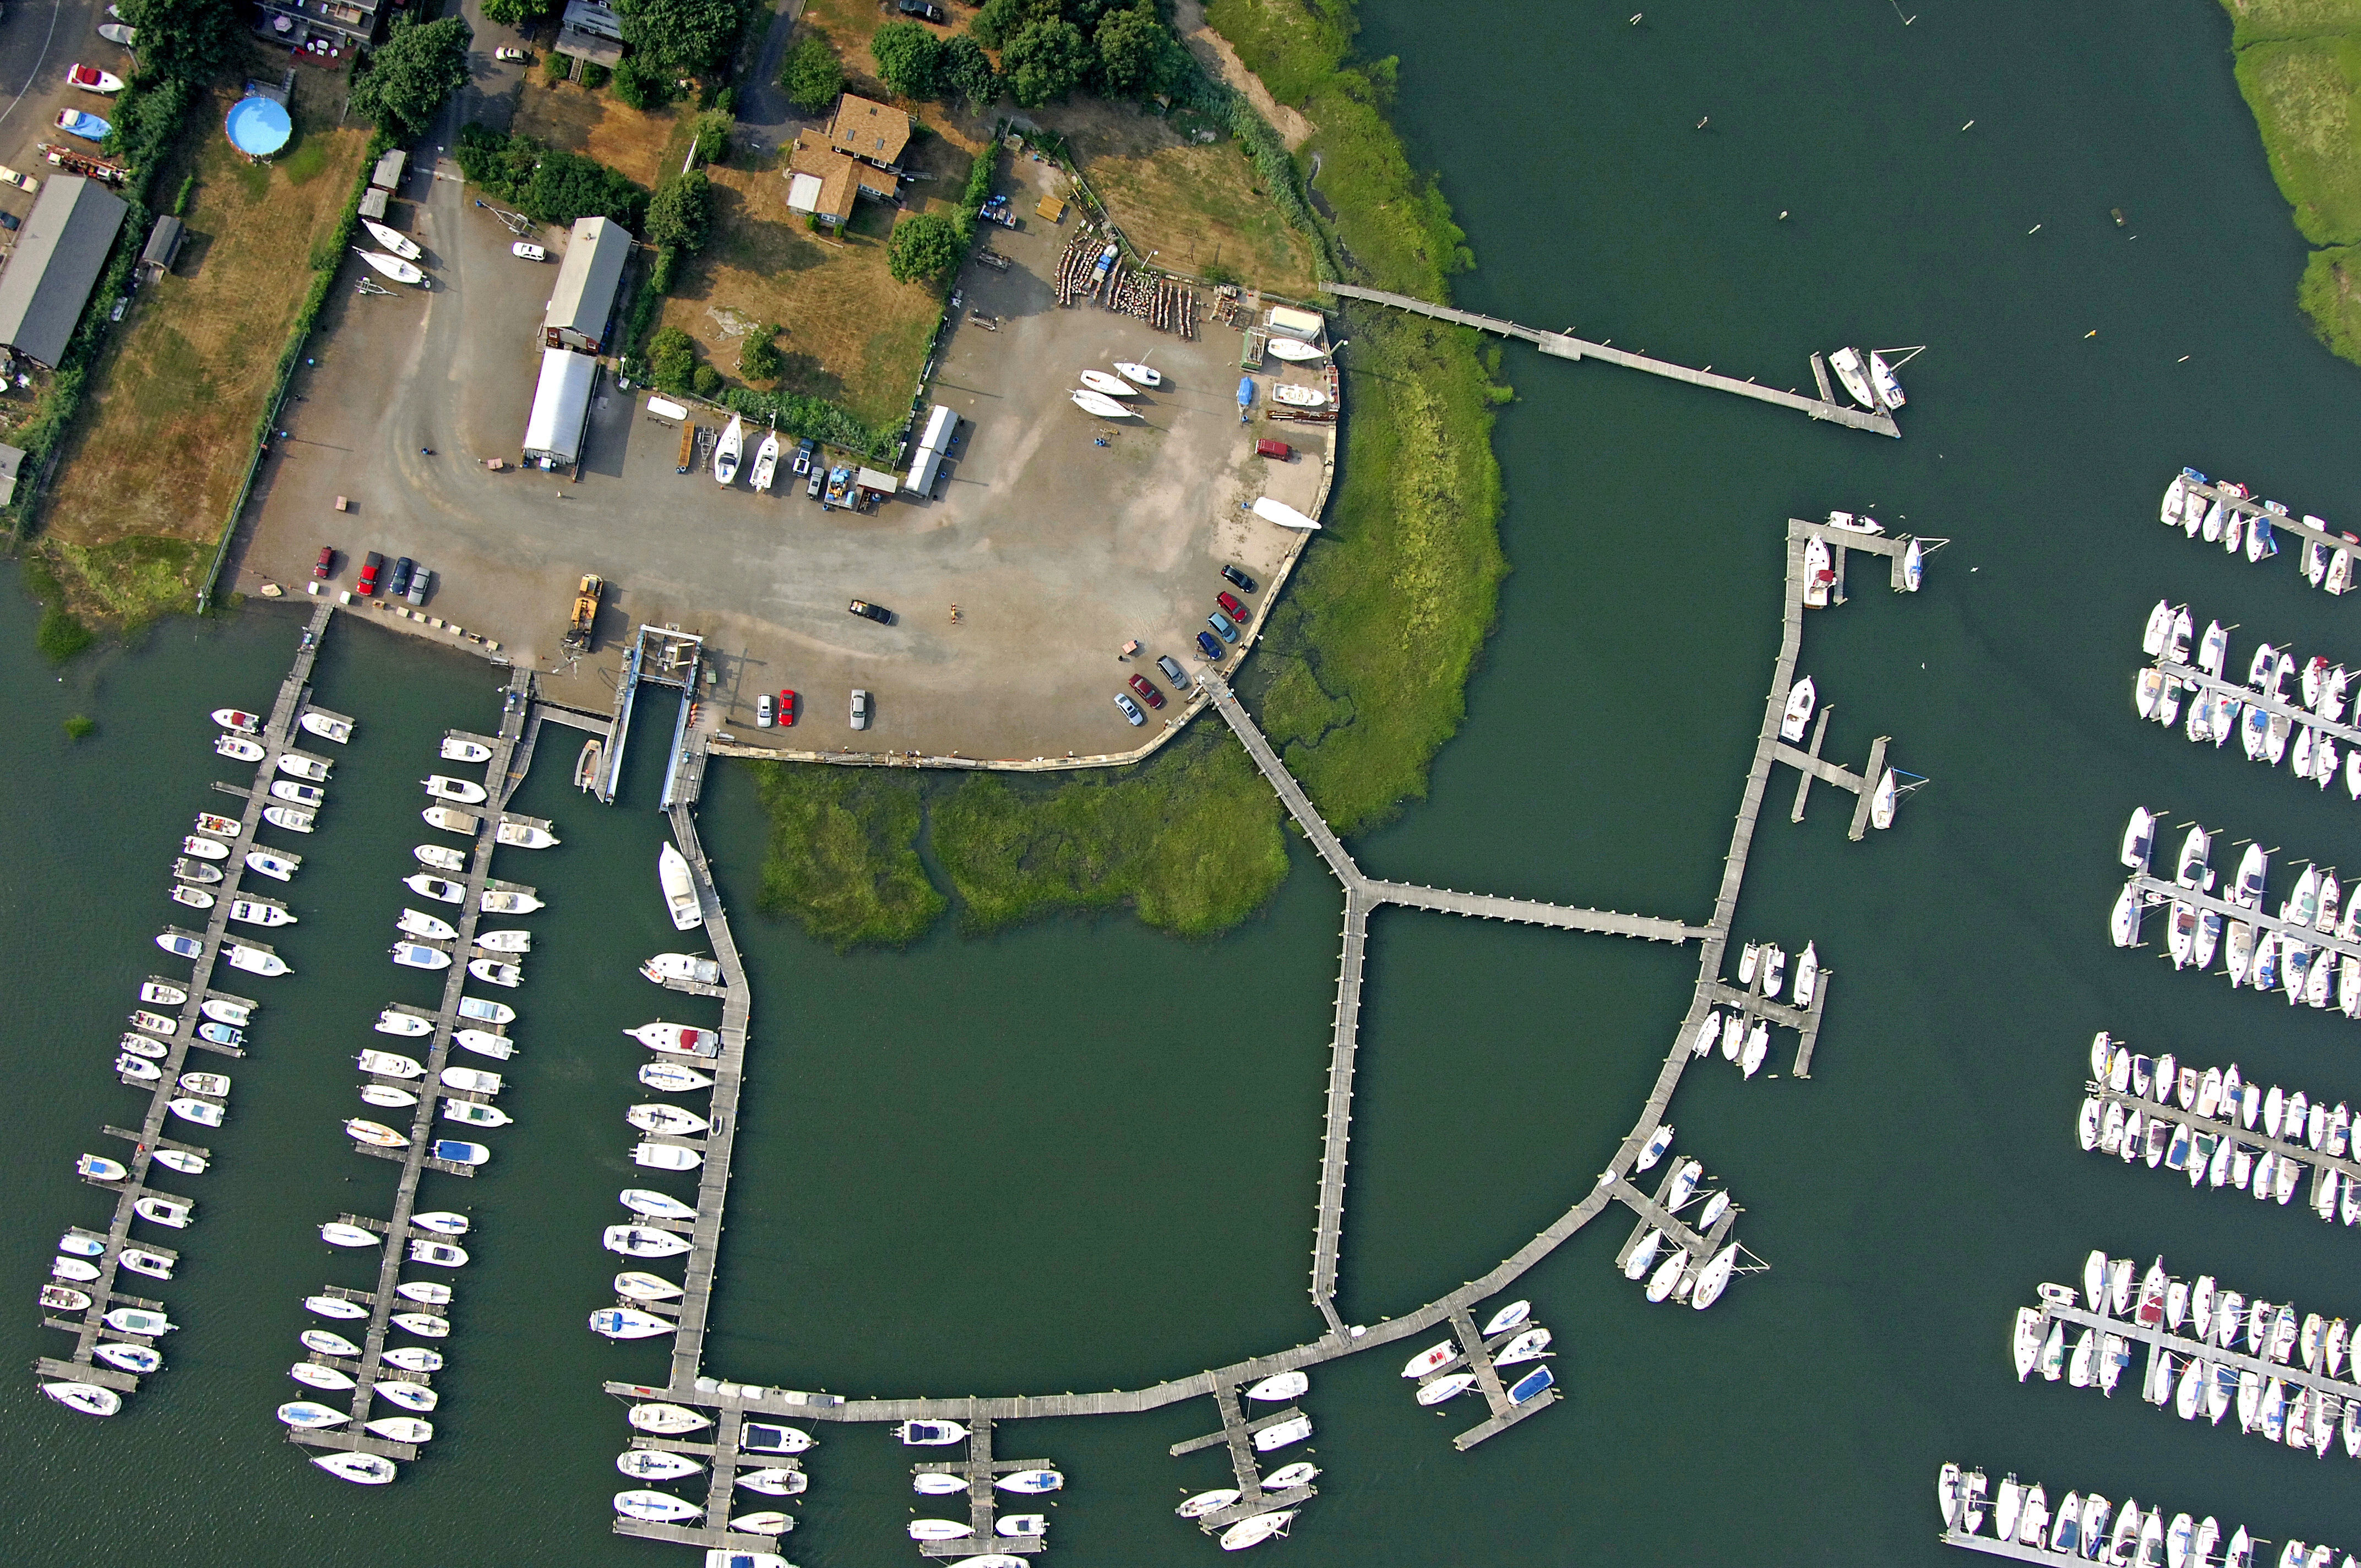 Goodsell Point Marina in Branford, CT, United States